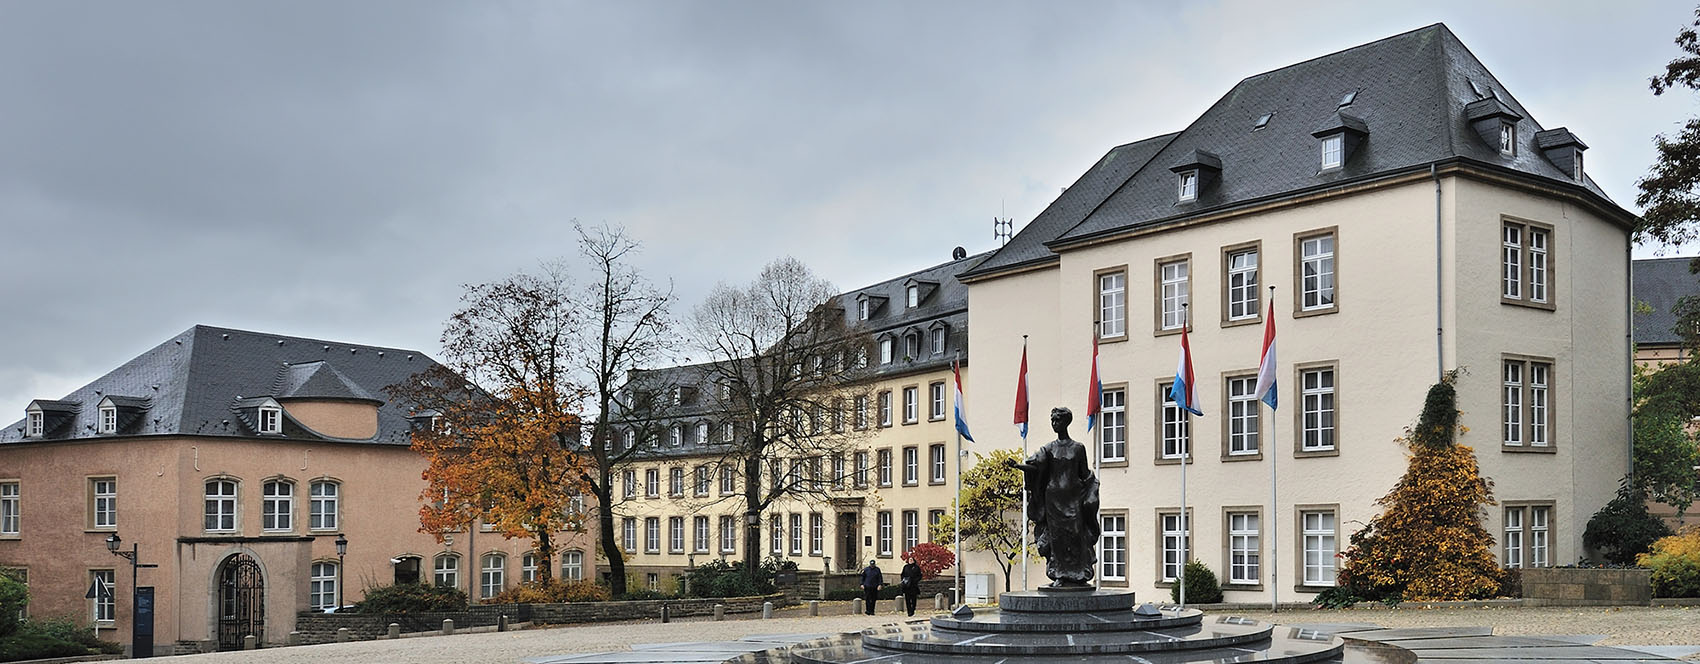 College In Luxembourg: Affordable, Excellent Quality